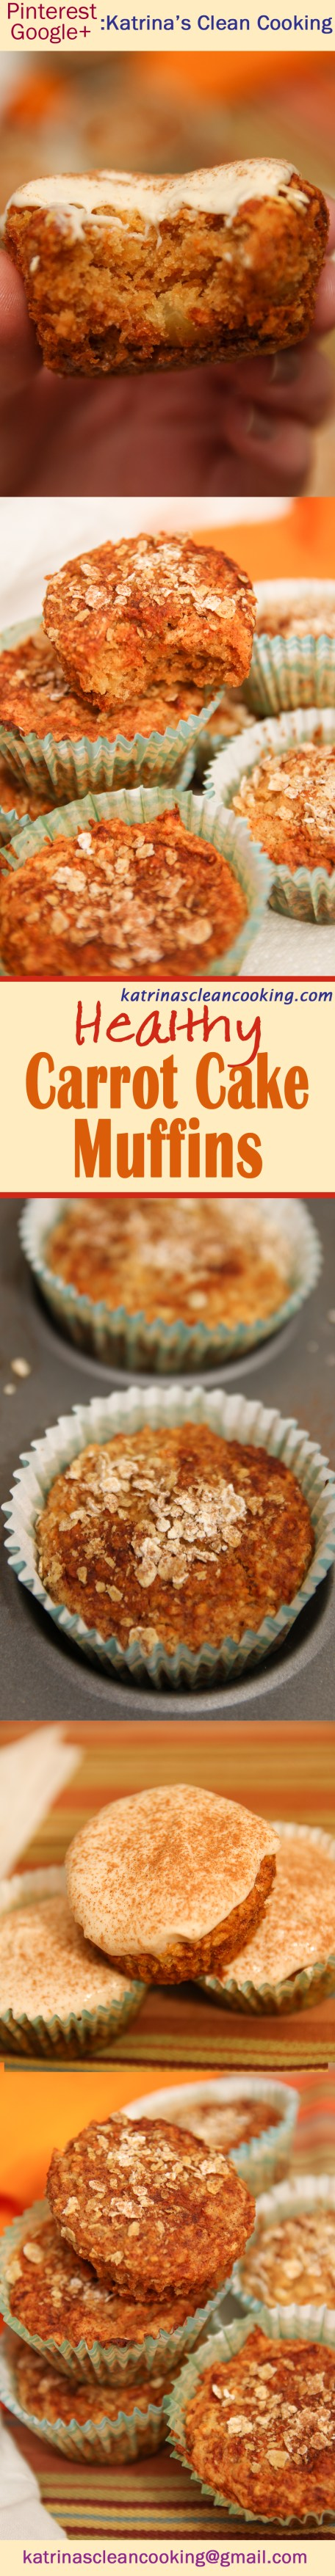 Healthy Carrot Muffins with cream cheese frosting #healthy #carrot cake #healthy #muffins #cupcakes